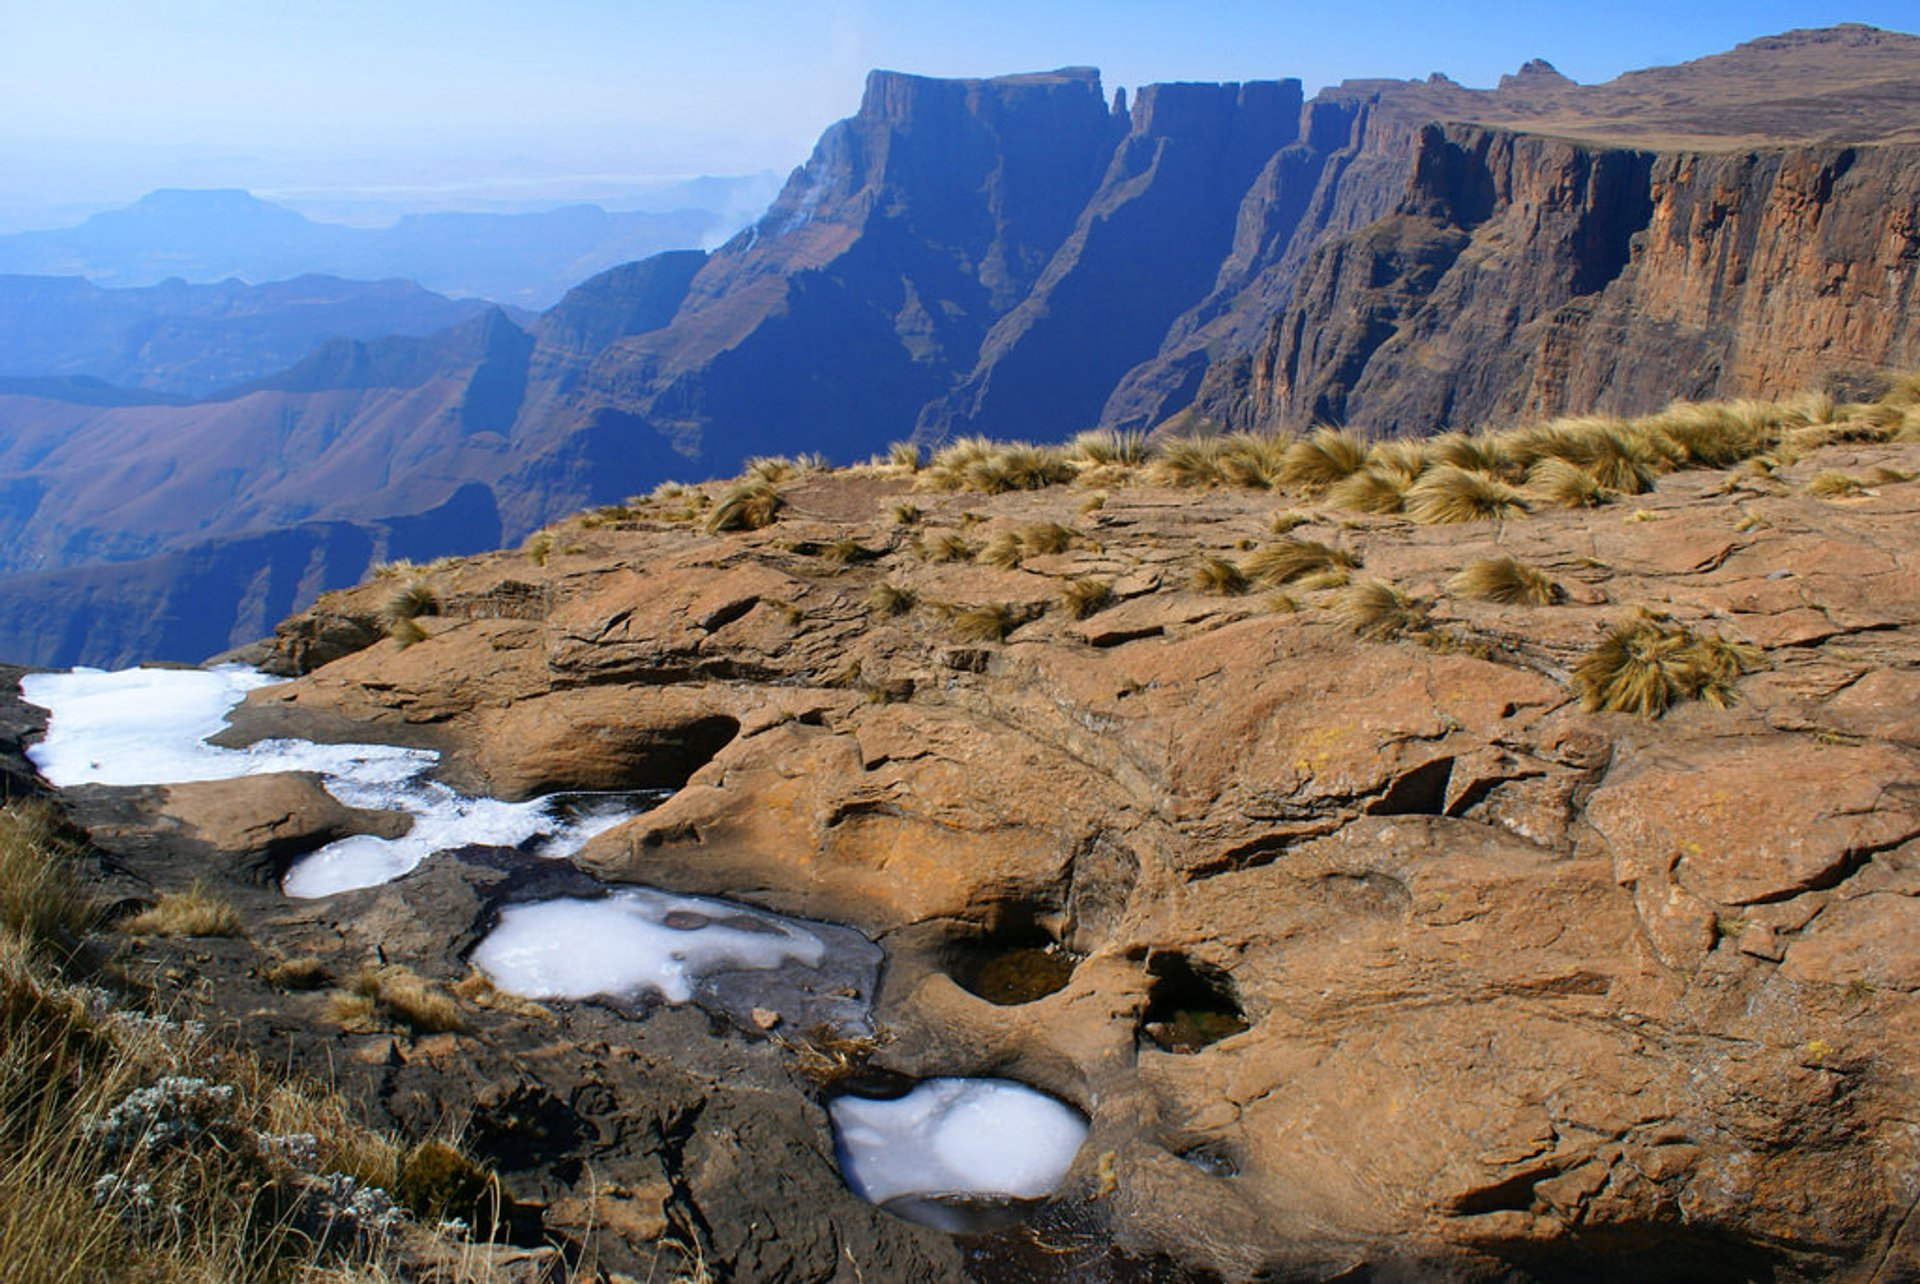 Upper part of the Drakensberg waterfalls, frozen in winter